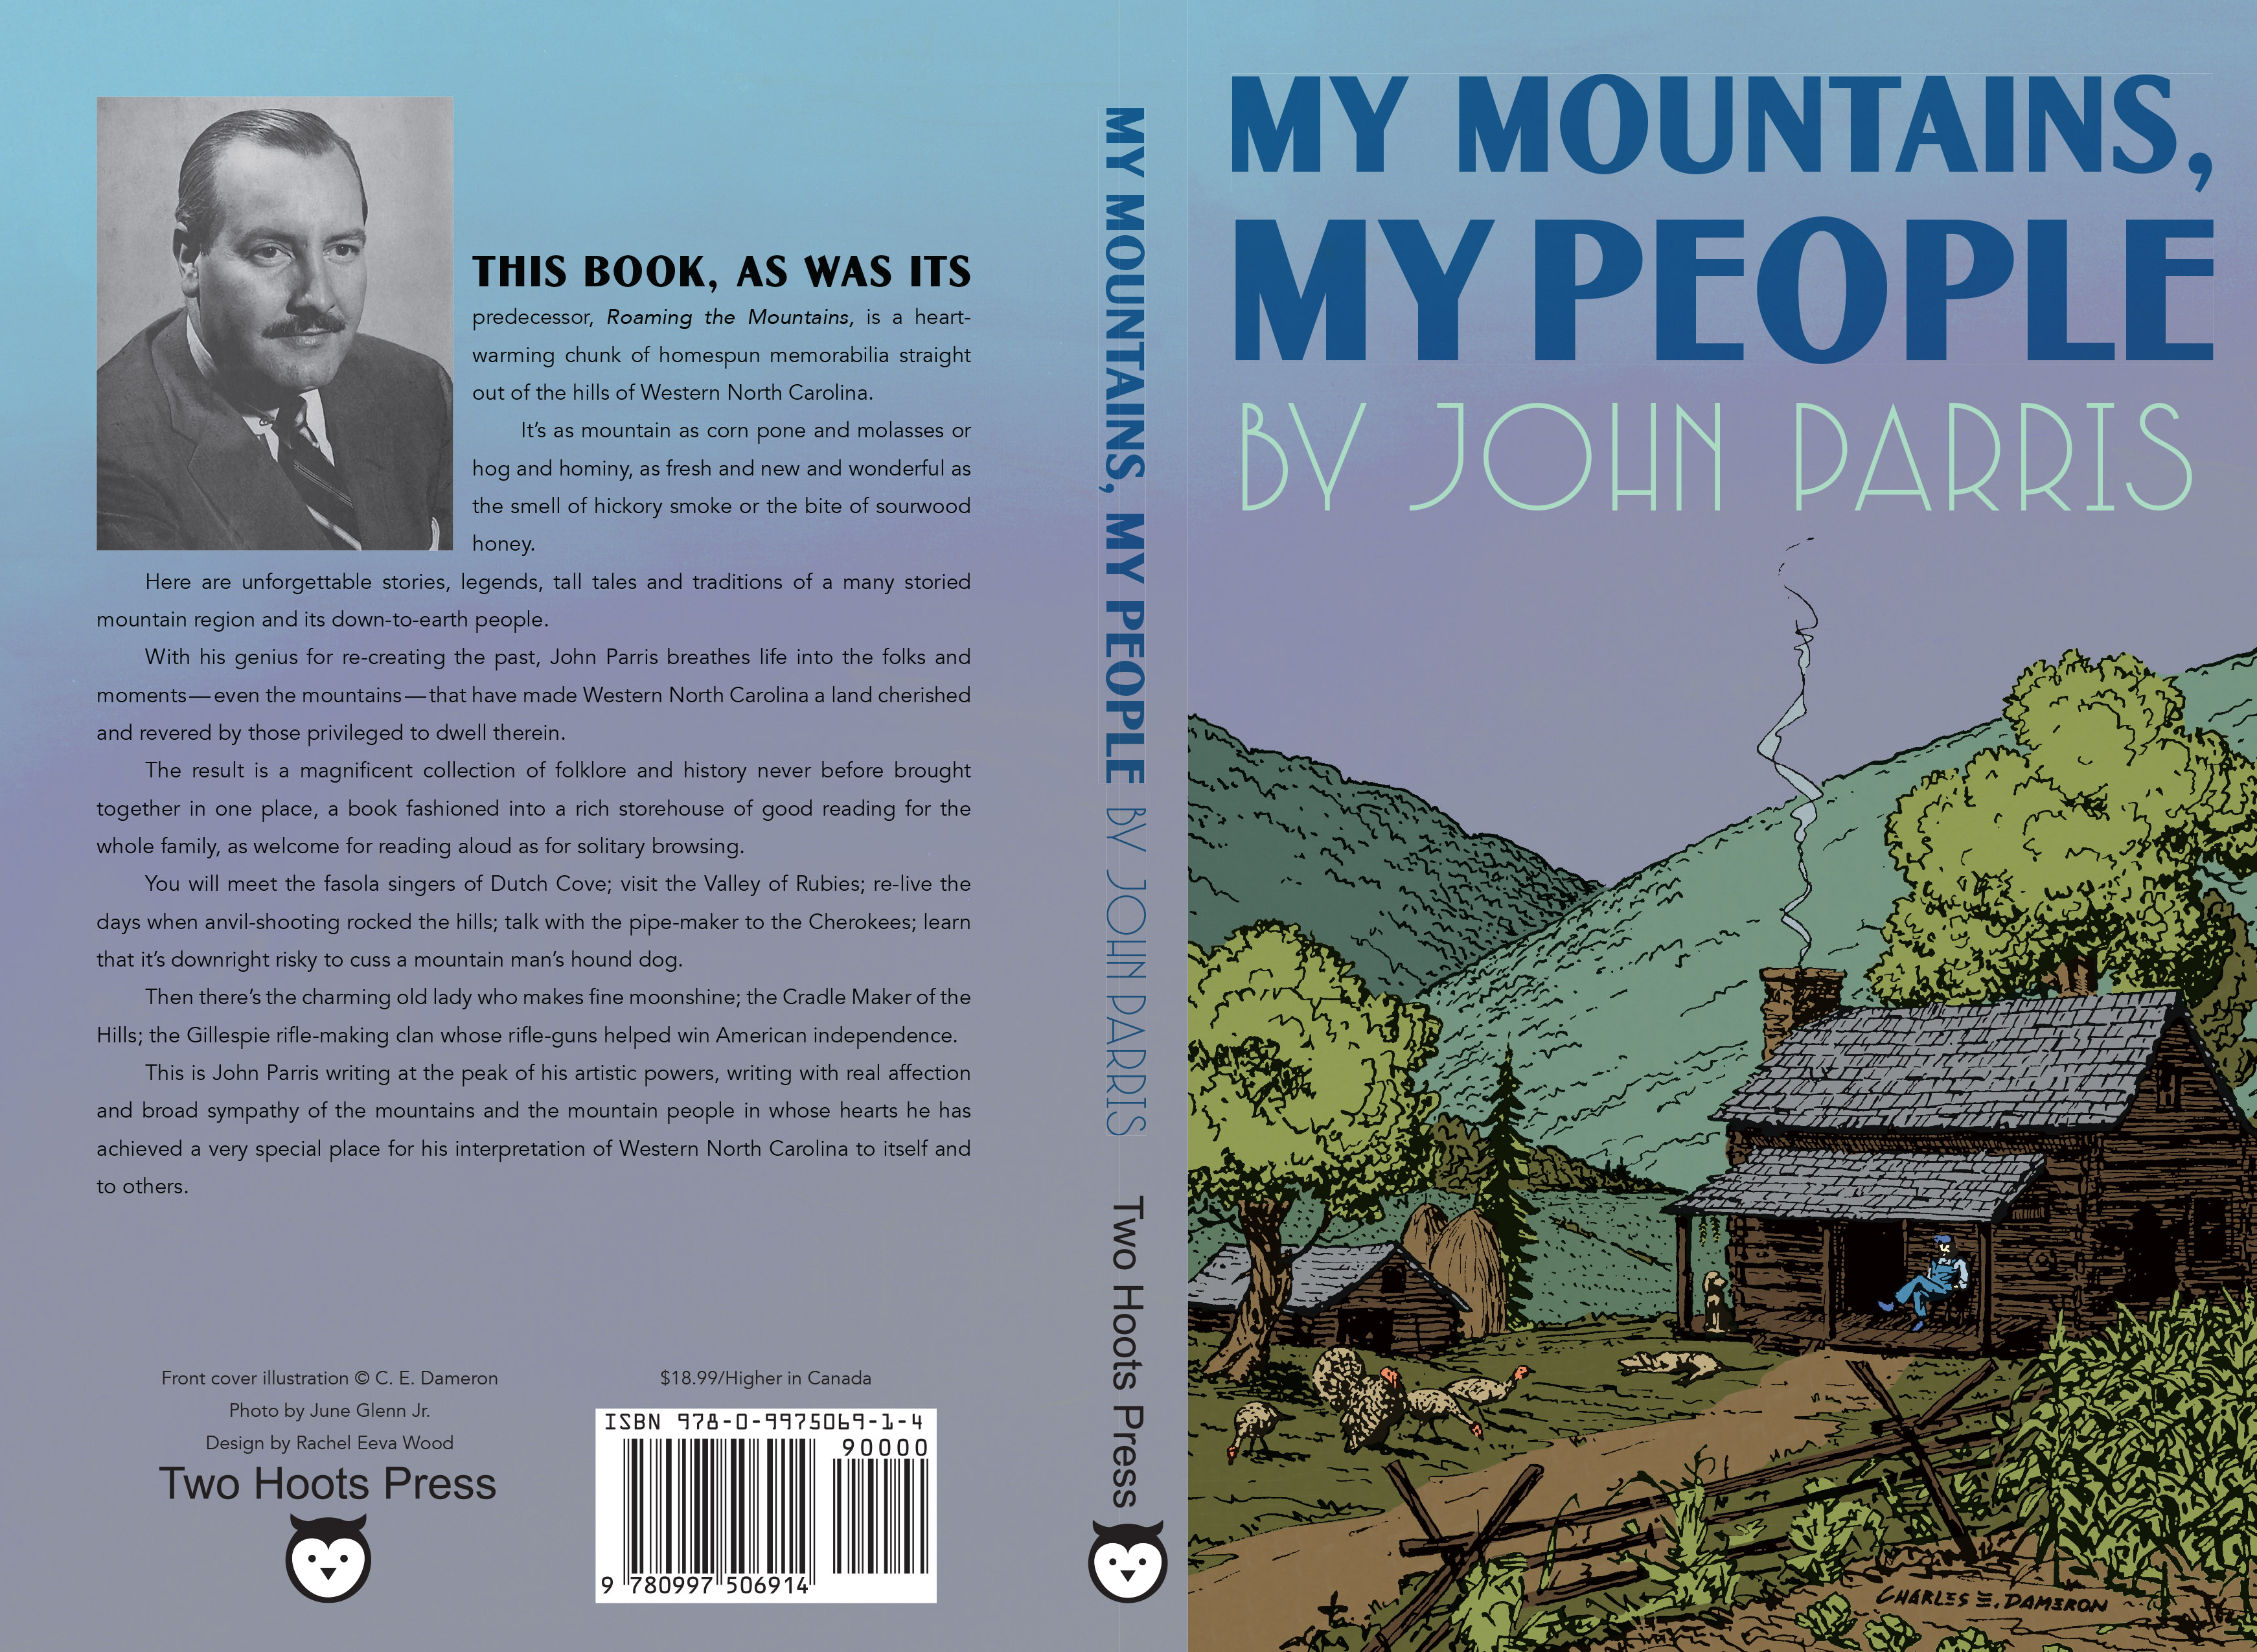 Full cover for MY MOUNTAINS, MY PEOPLE